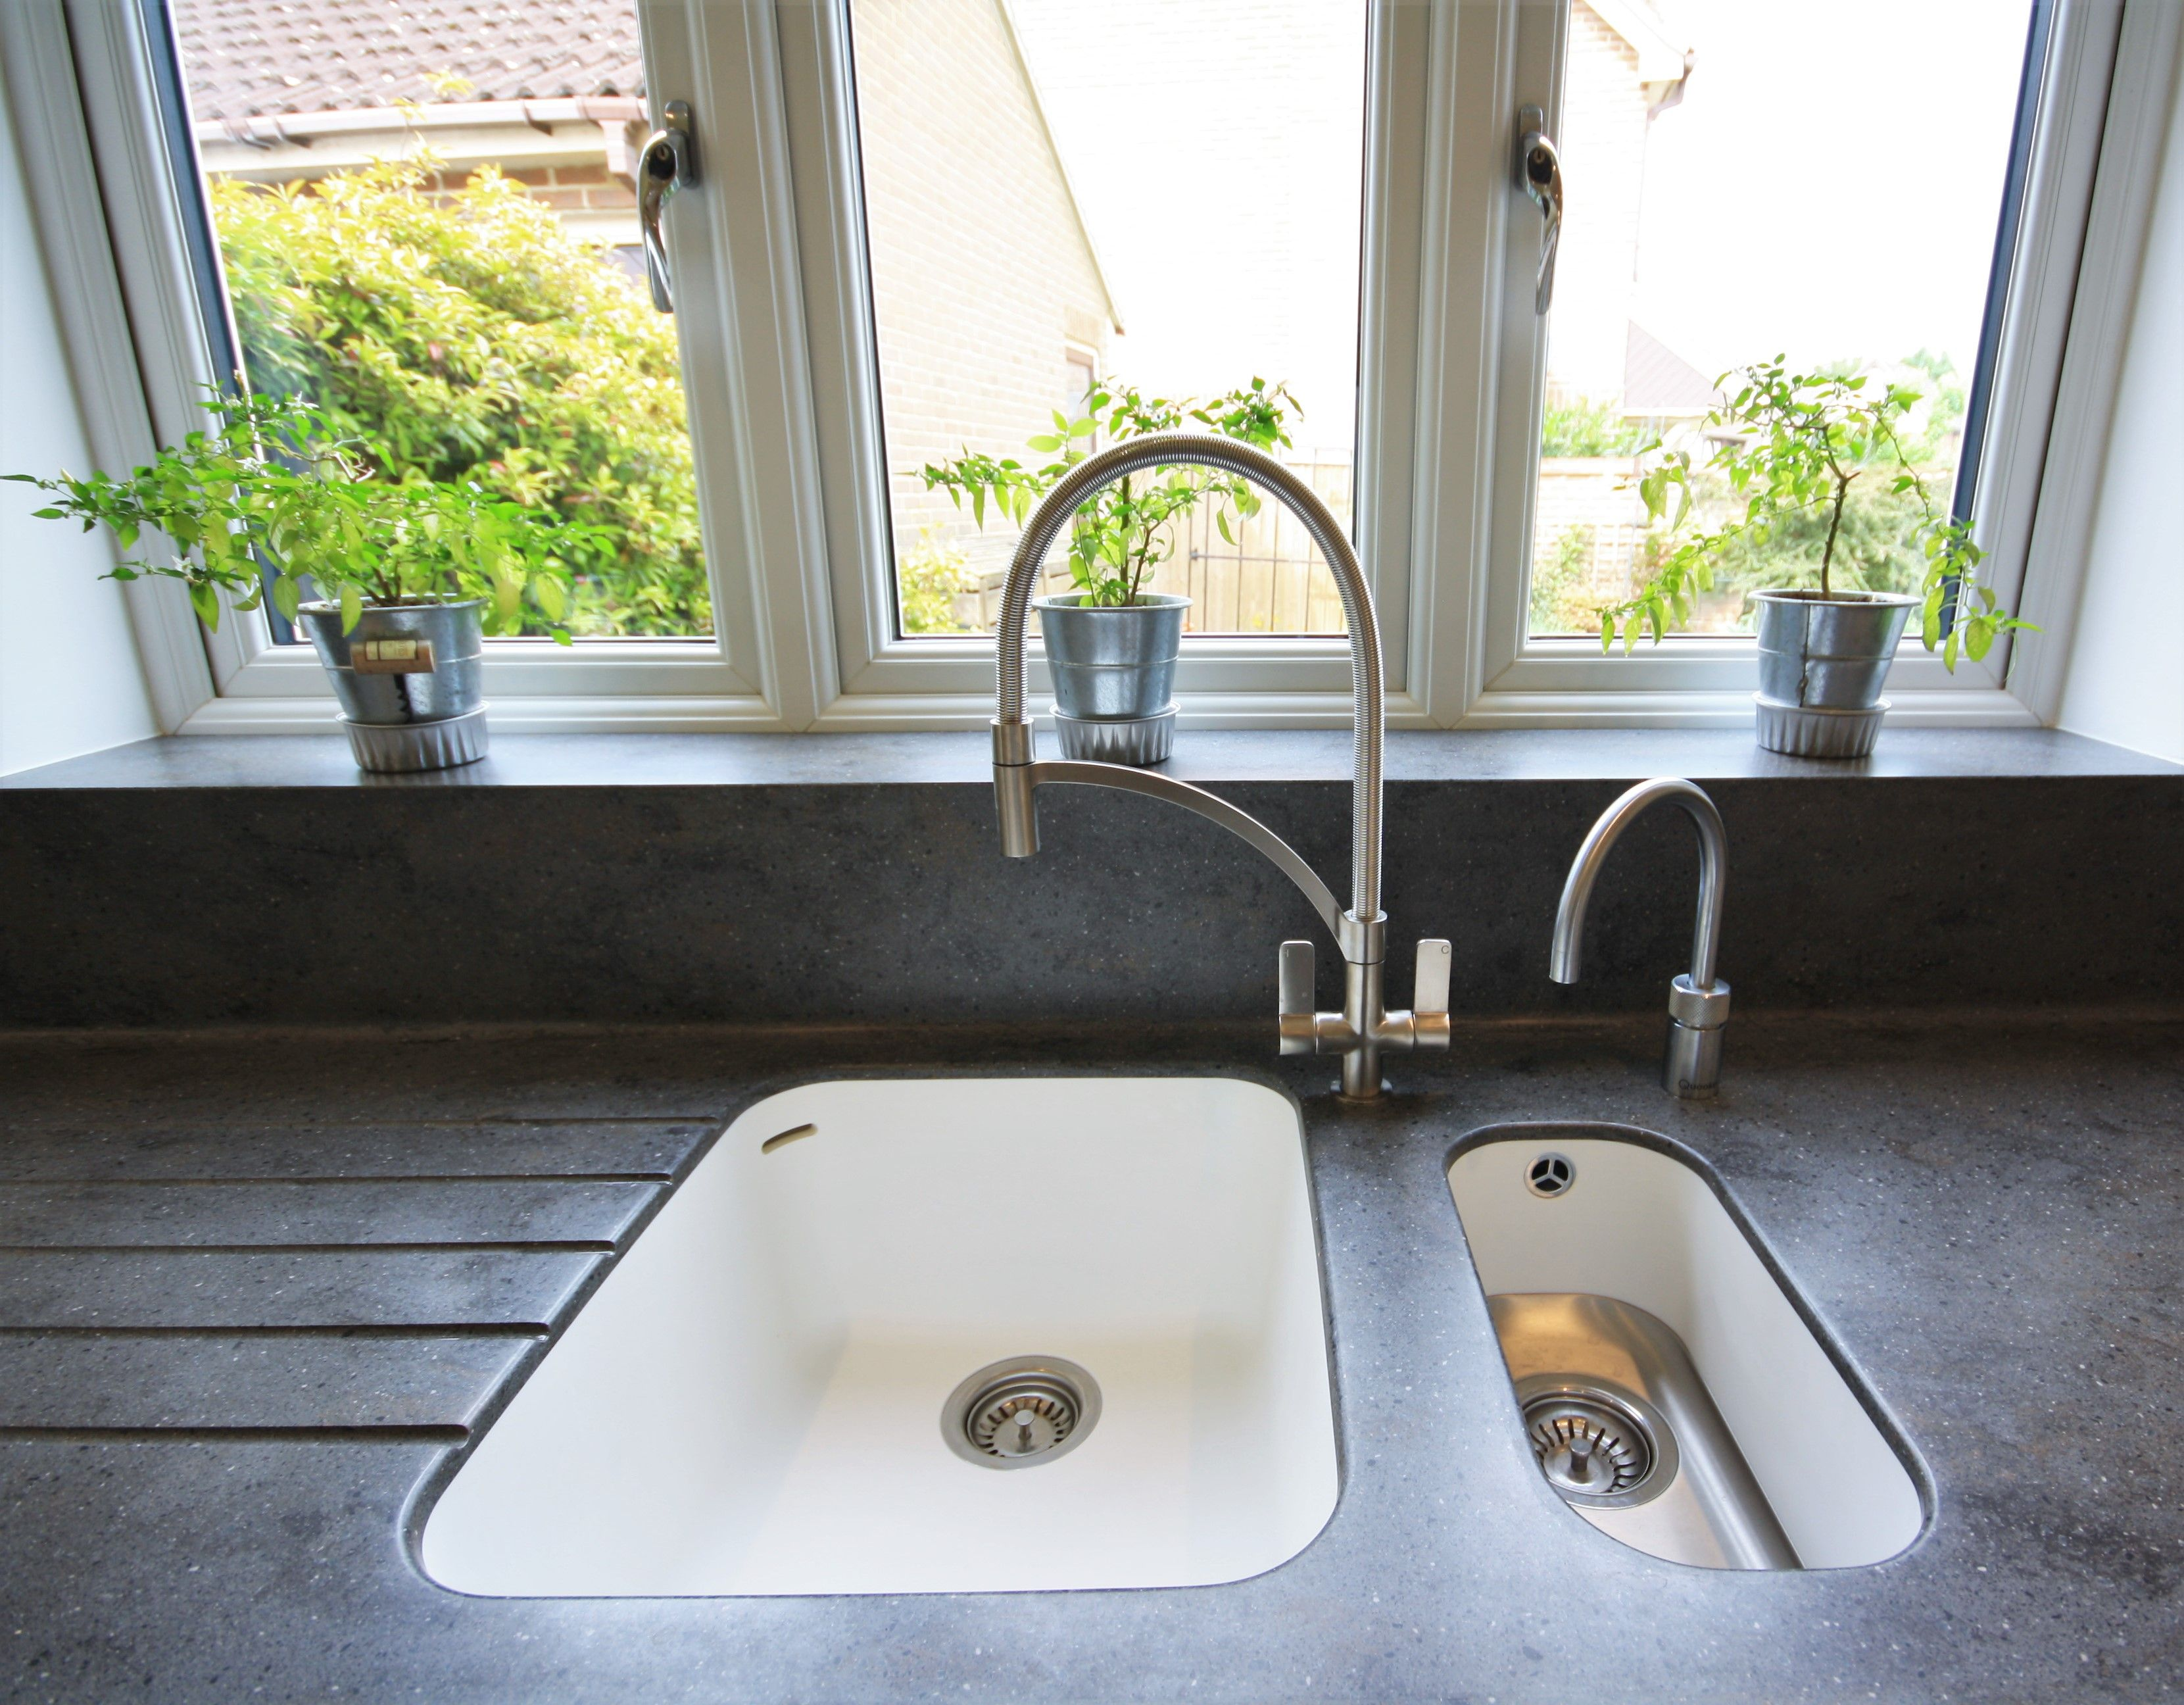 Corian Worktop And Up Stands With Corian Sink These One And A Half